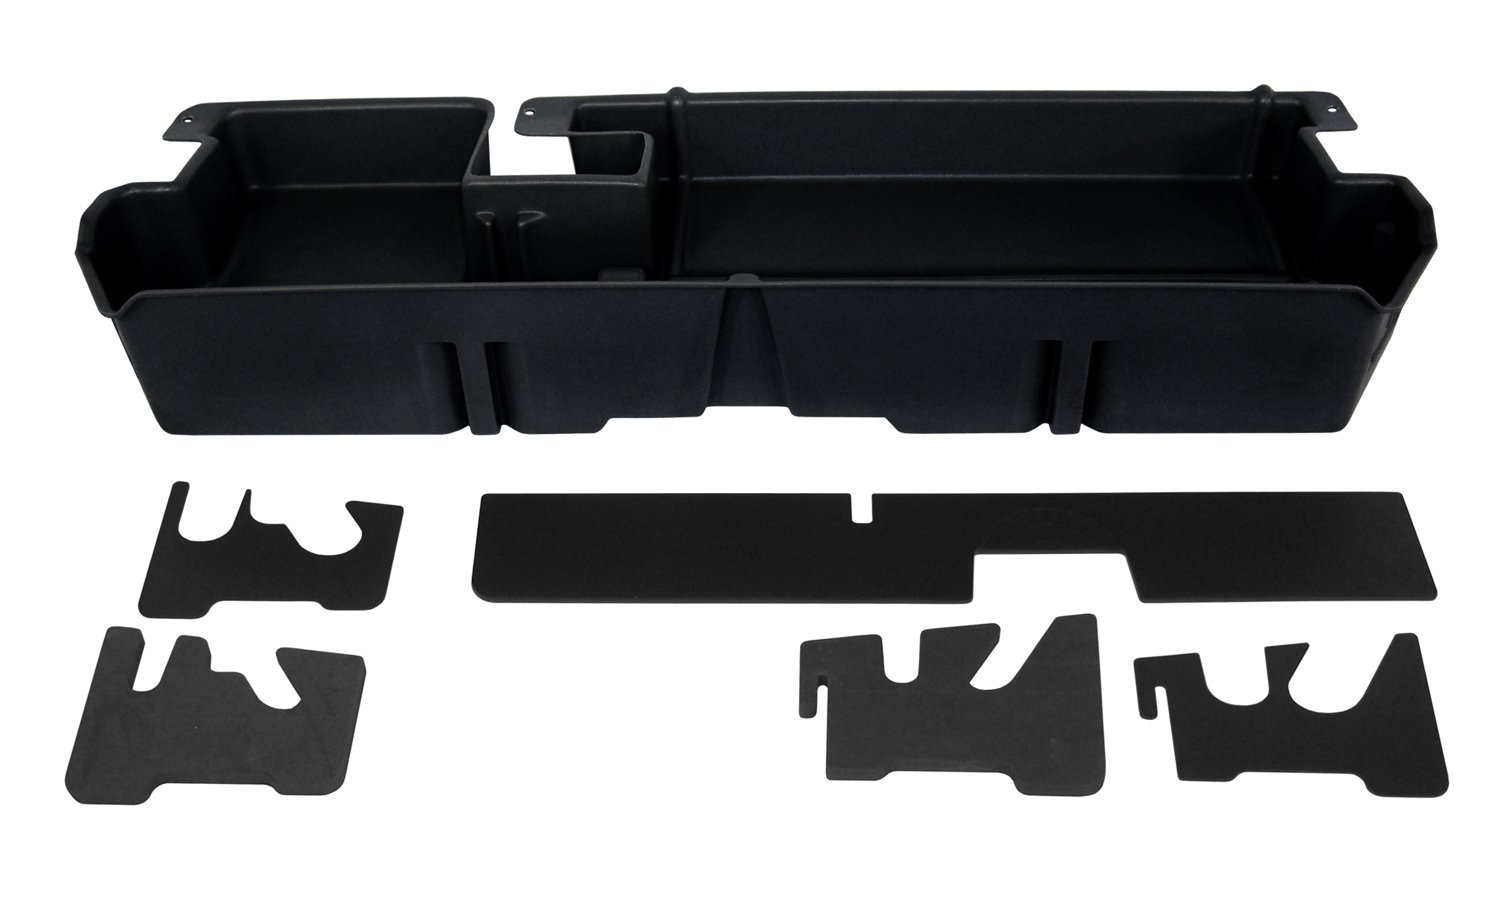 DU-HA Under Seat Storage Fits 07-17 Toyota Tundra Double Cab without Subwoofer, Black, Part #60051